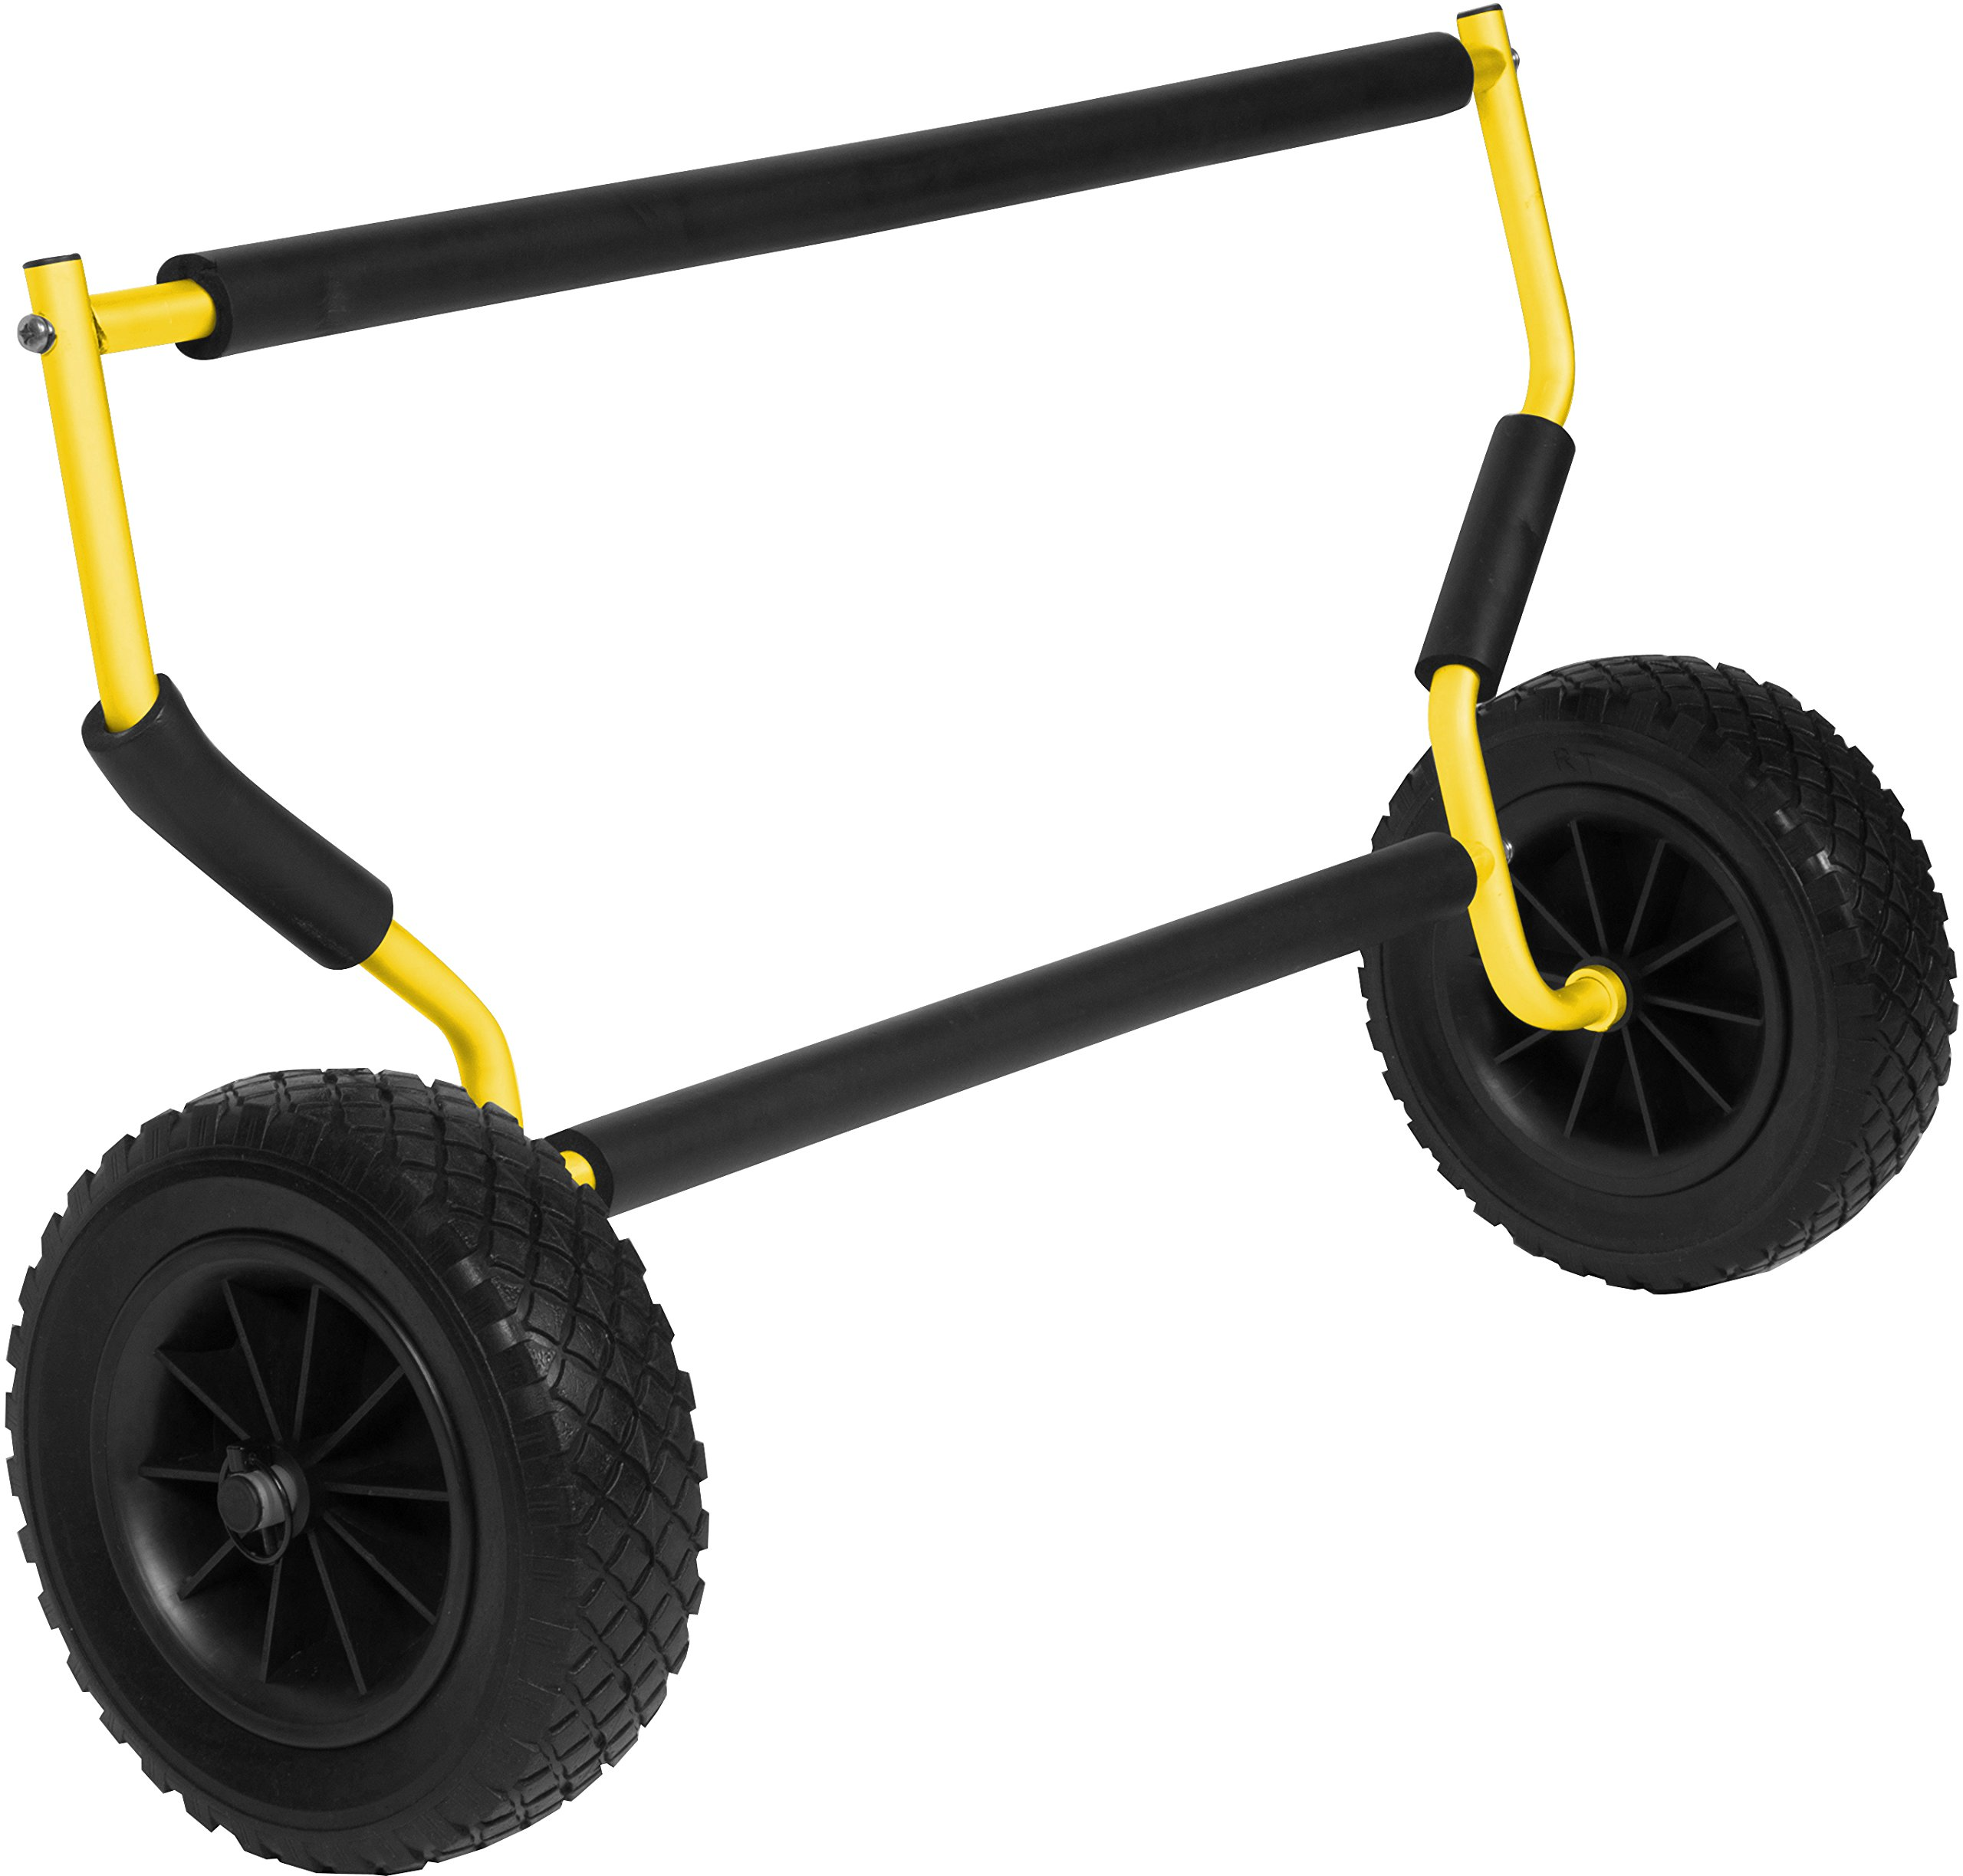 Suspenz SUP Airless Cart, Yellow by Suspenz (Image #1)